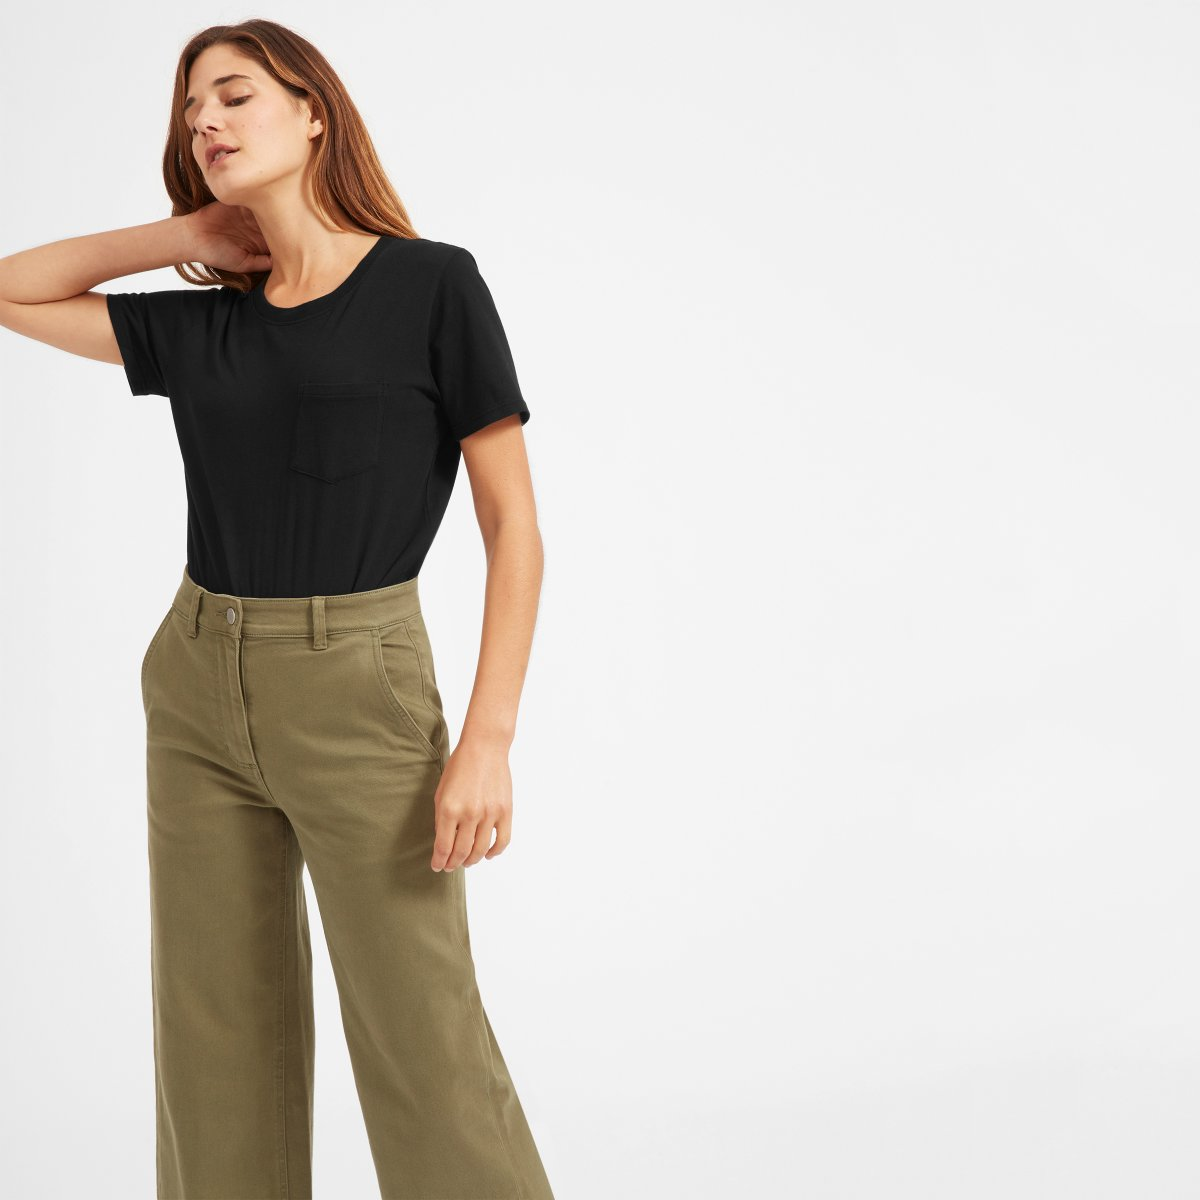 Forum on this topic: The Cotton Box-Cut Pocket Tee (womens), the-cotton-box-cut-pocket-tee-womens/